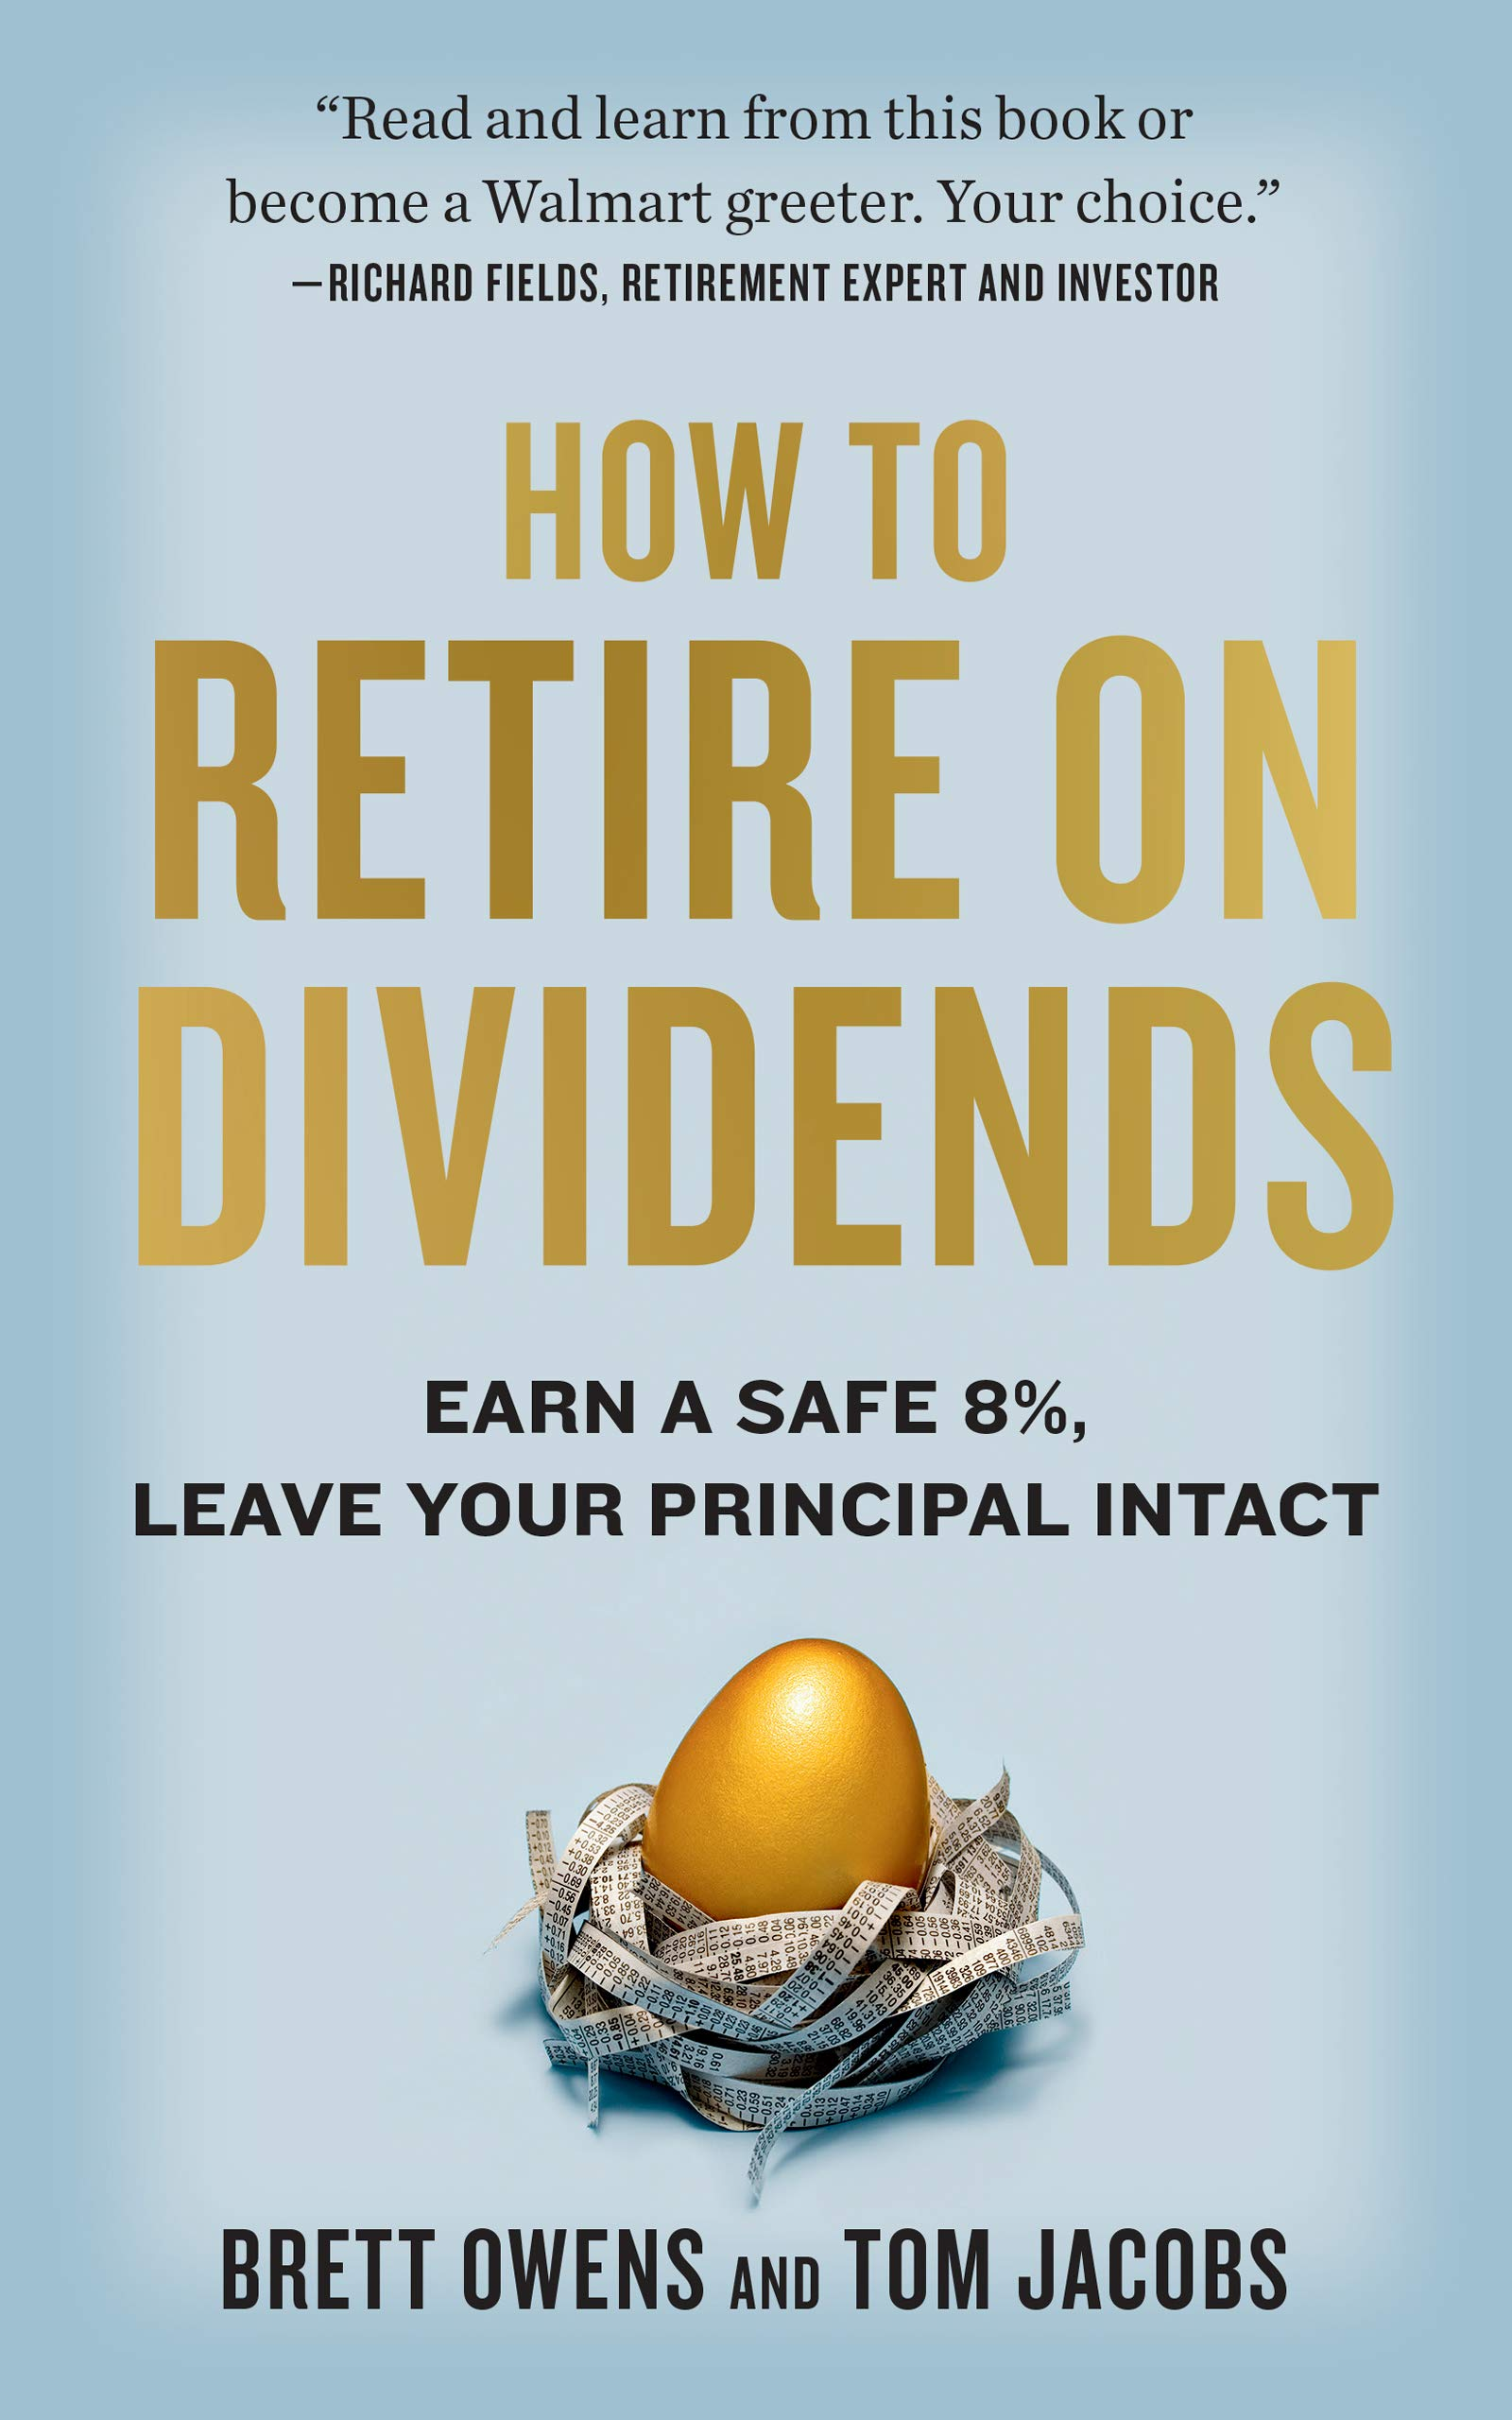 How to Retire on Dividends: Earn a Safe 8%, Leave Your Principal Intact